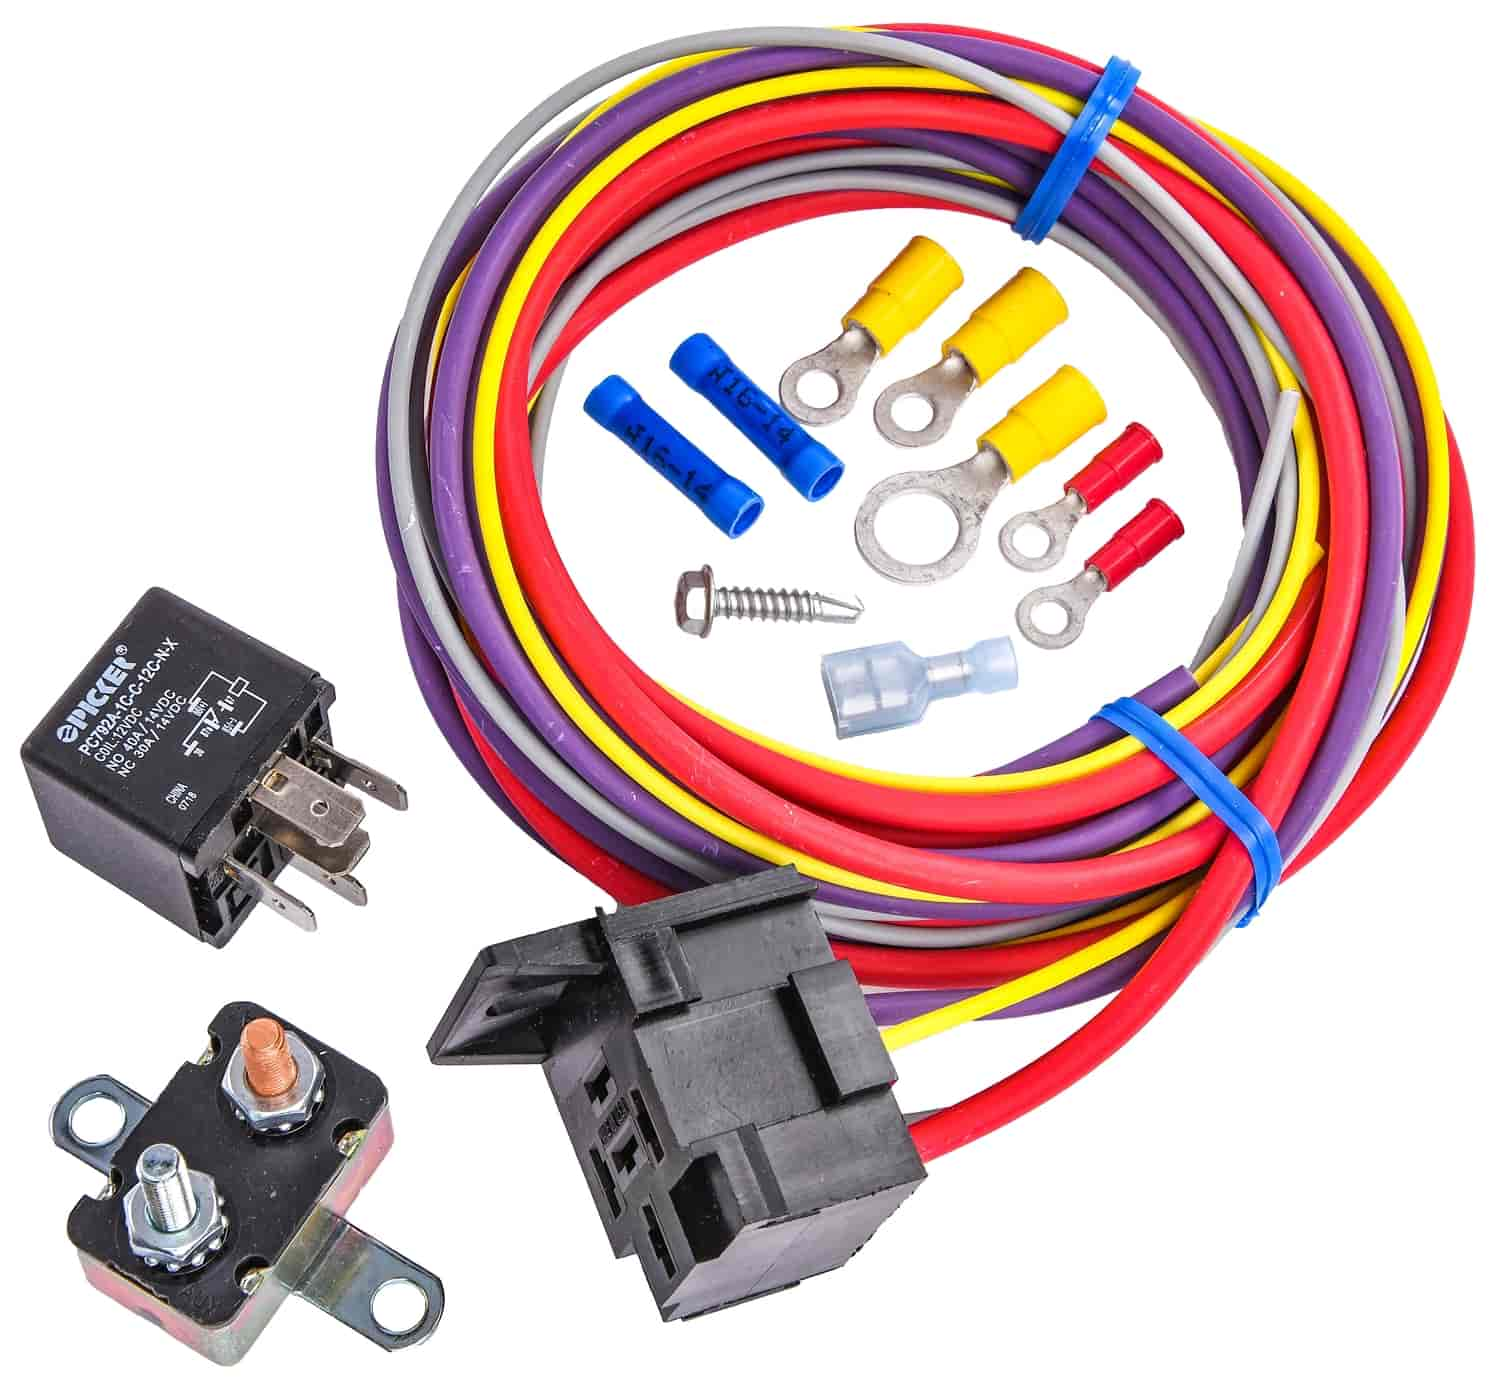 Wiring Harness Heat Protection